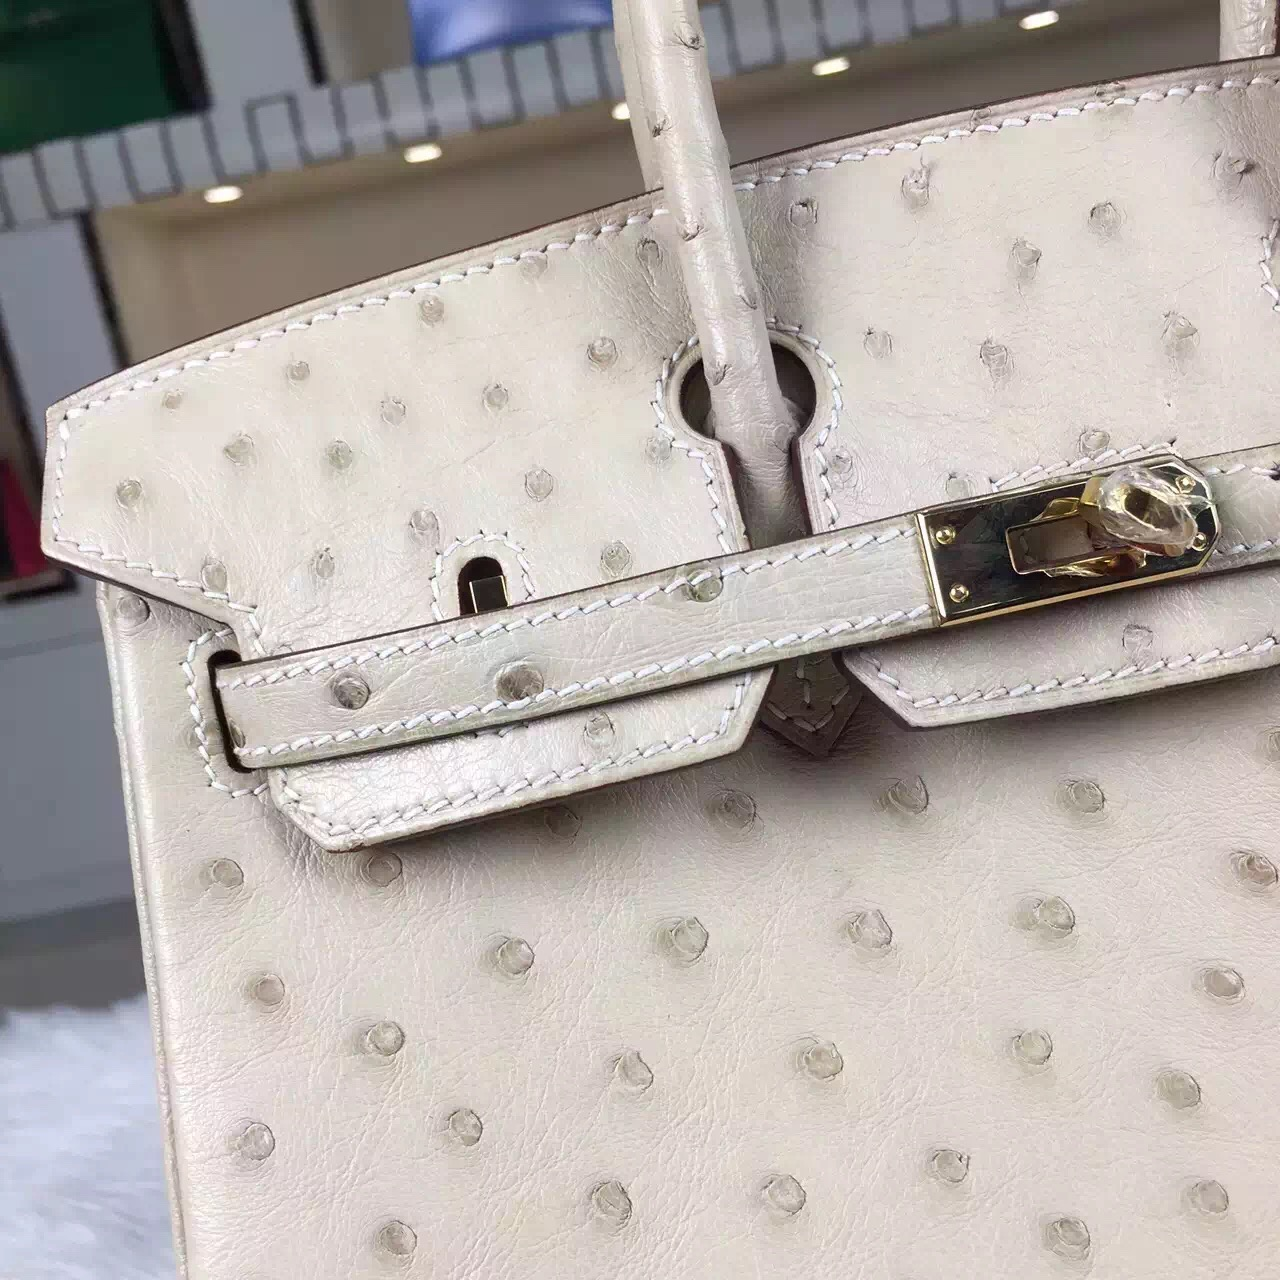 Hot Sale Hermes Original Ostrich Leather Birkin Bag 25cm in 3C Wool White